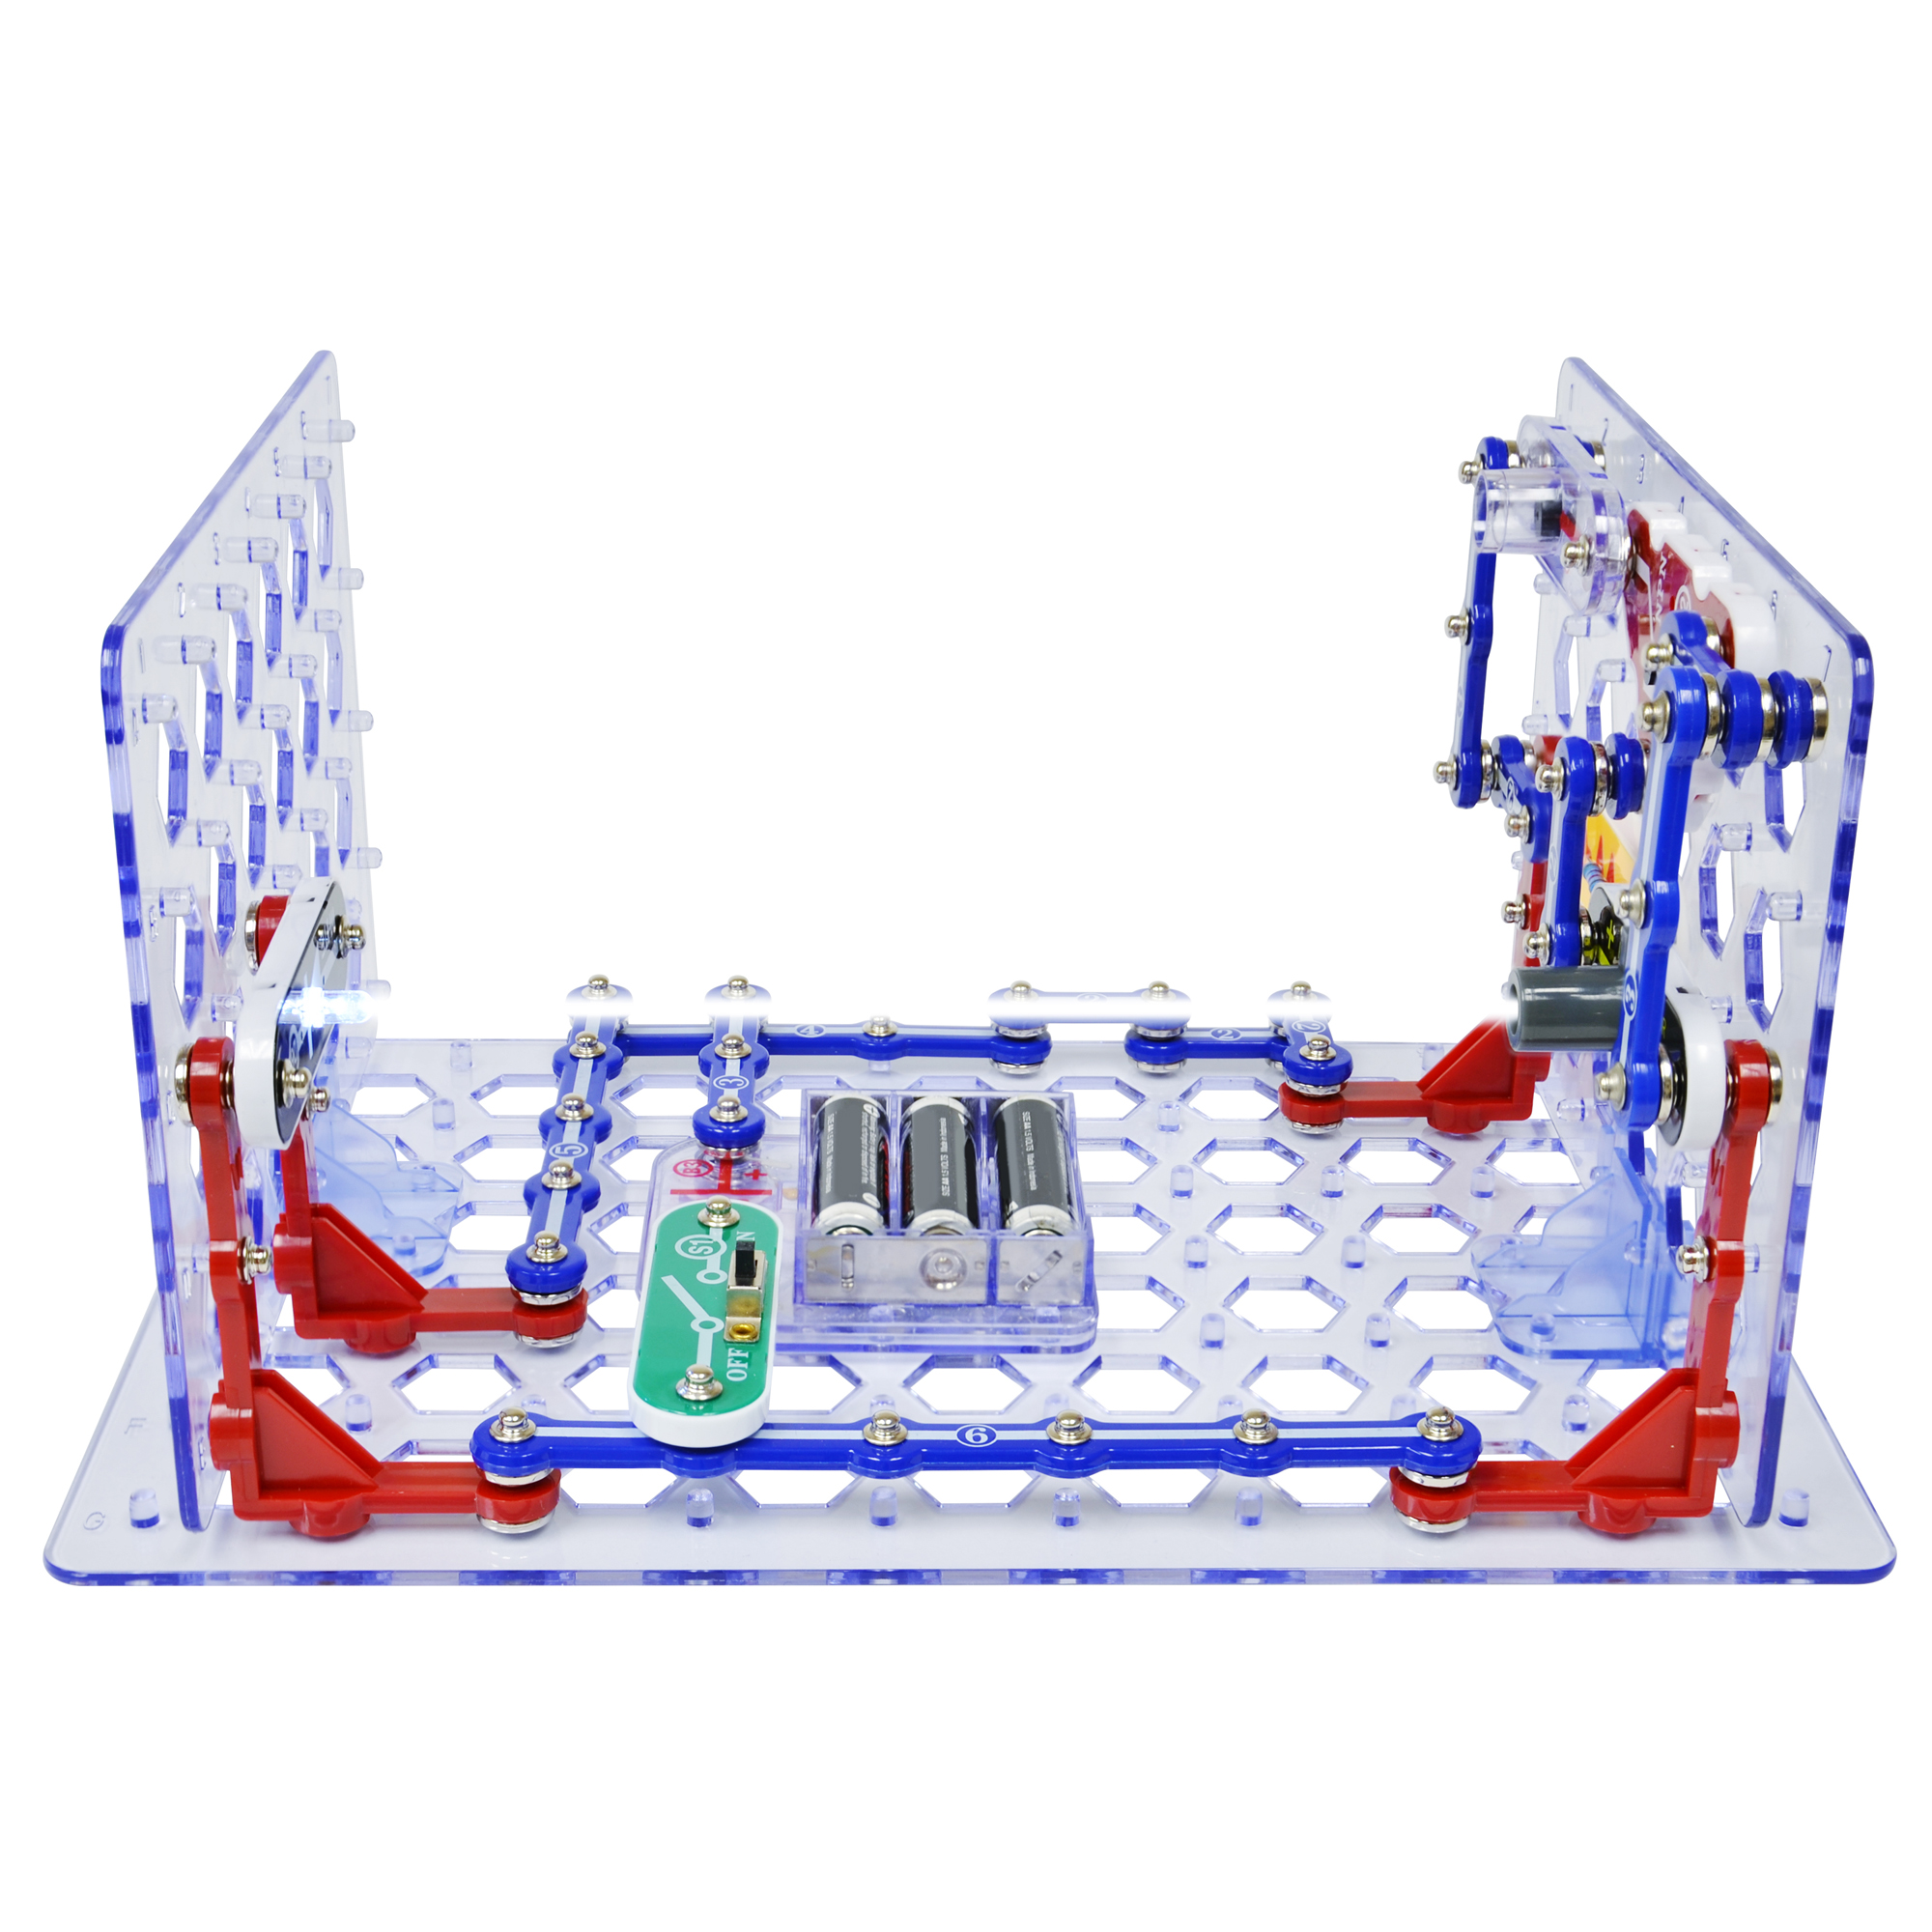 Snap Circuits 3d Illumination Elenco Circuit Board Components Best Toddler Toys Previous Next